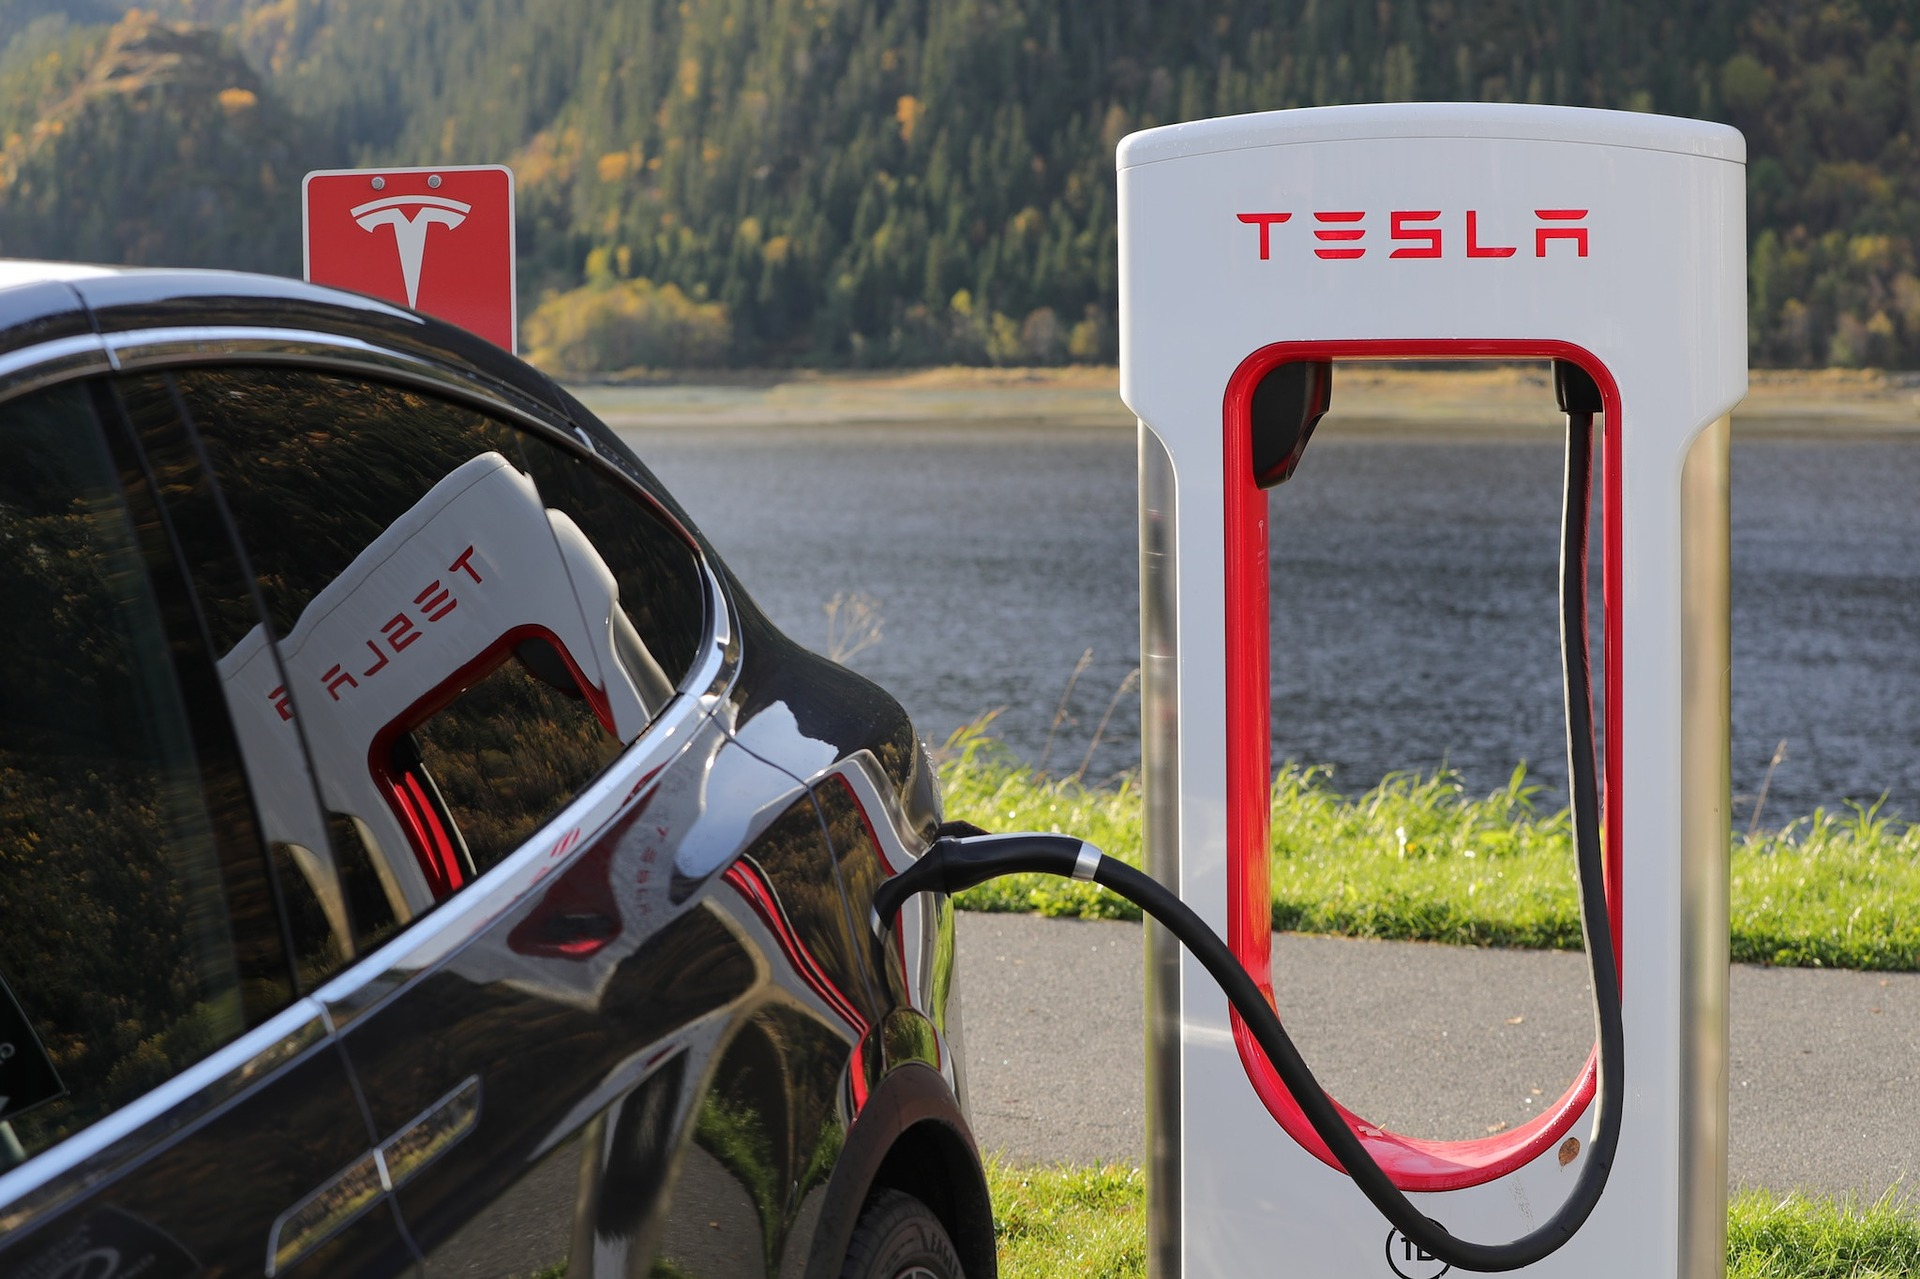 How Much Does A Used Tesla Cost?